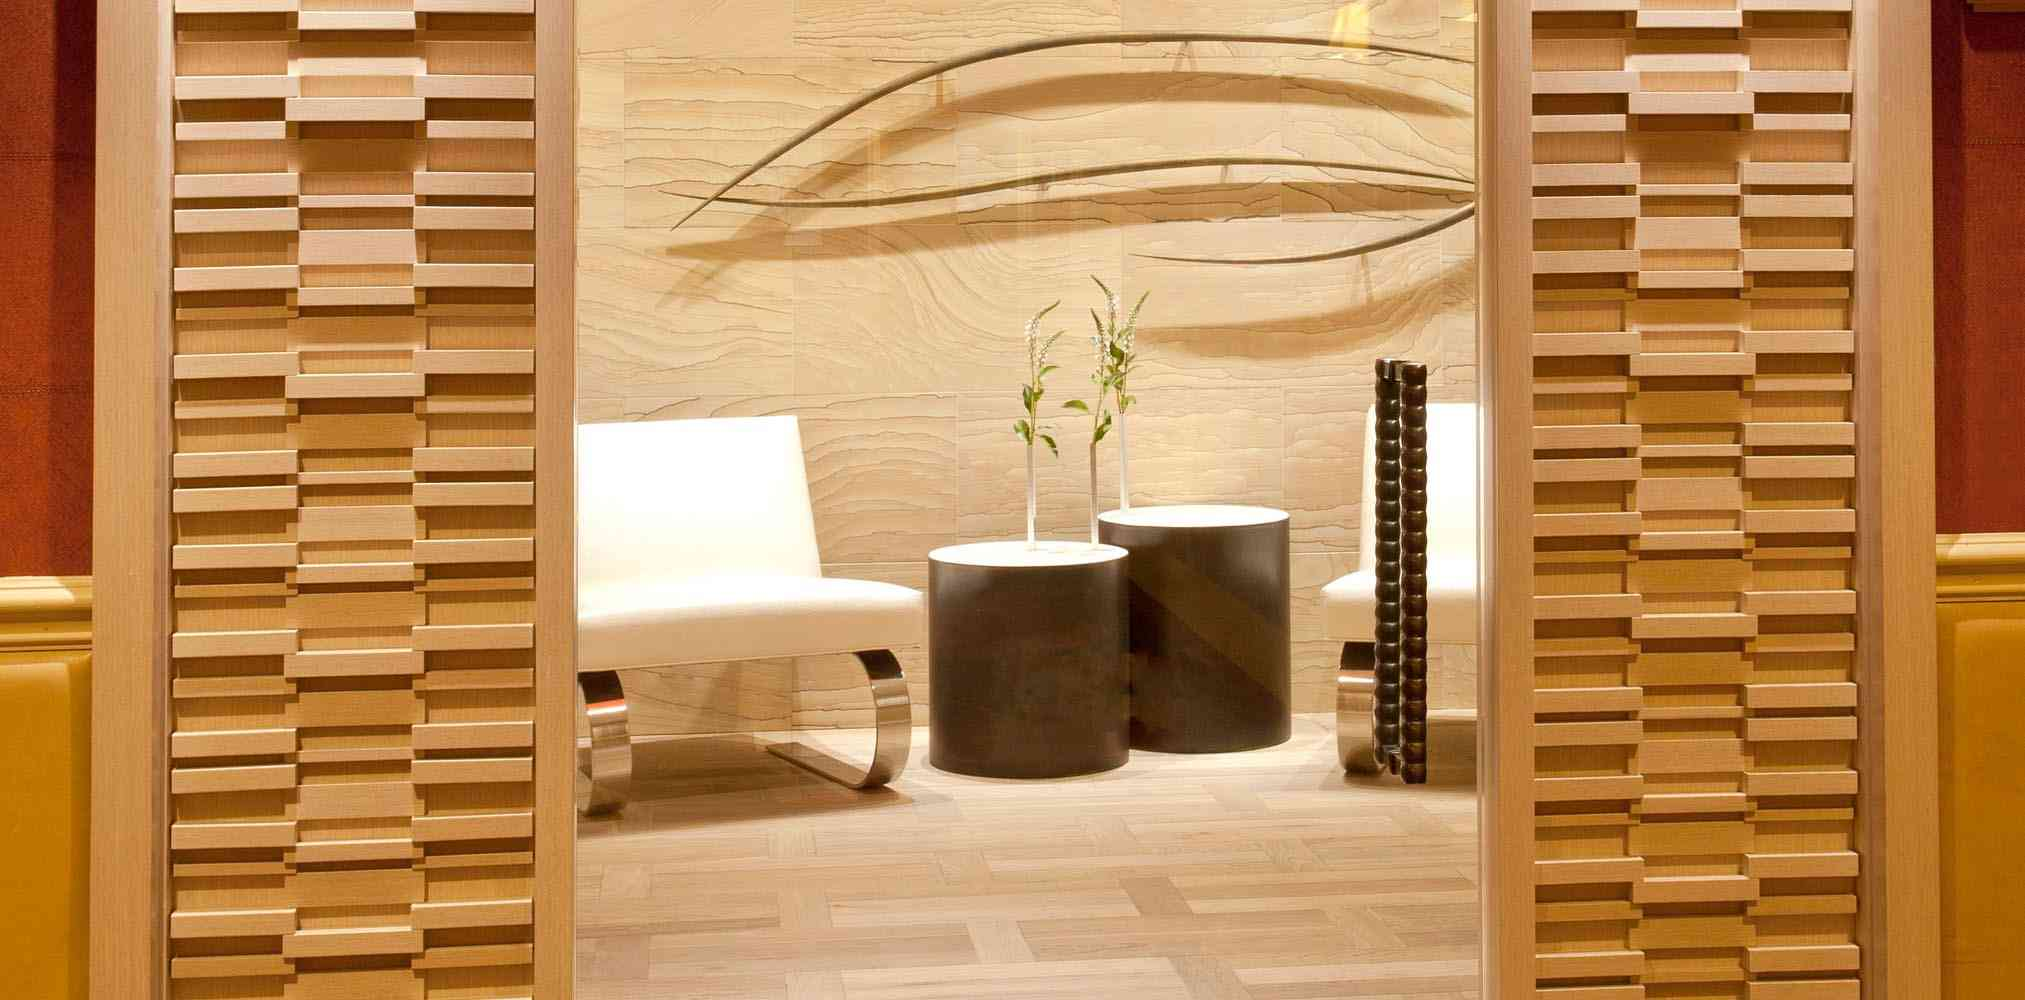 hotel jw marriott essex house vision design antic colonial porcelanosa-4